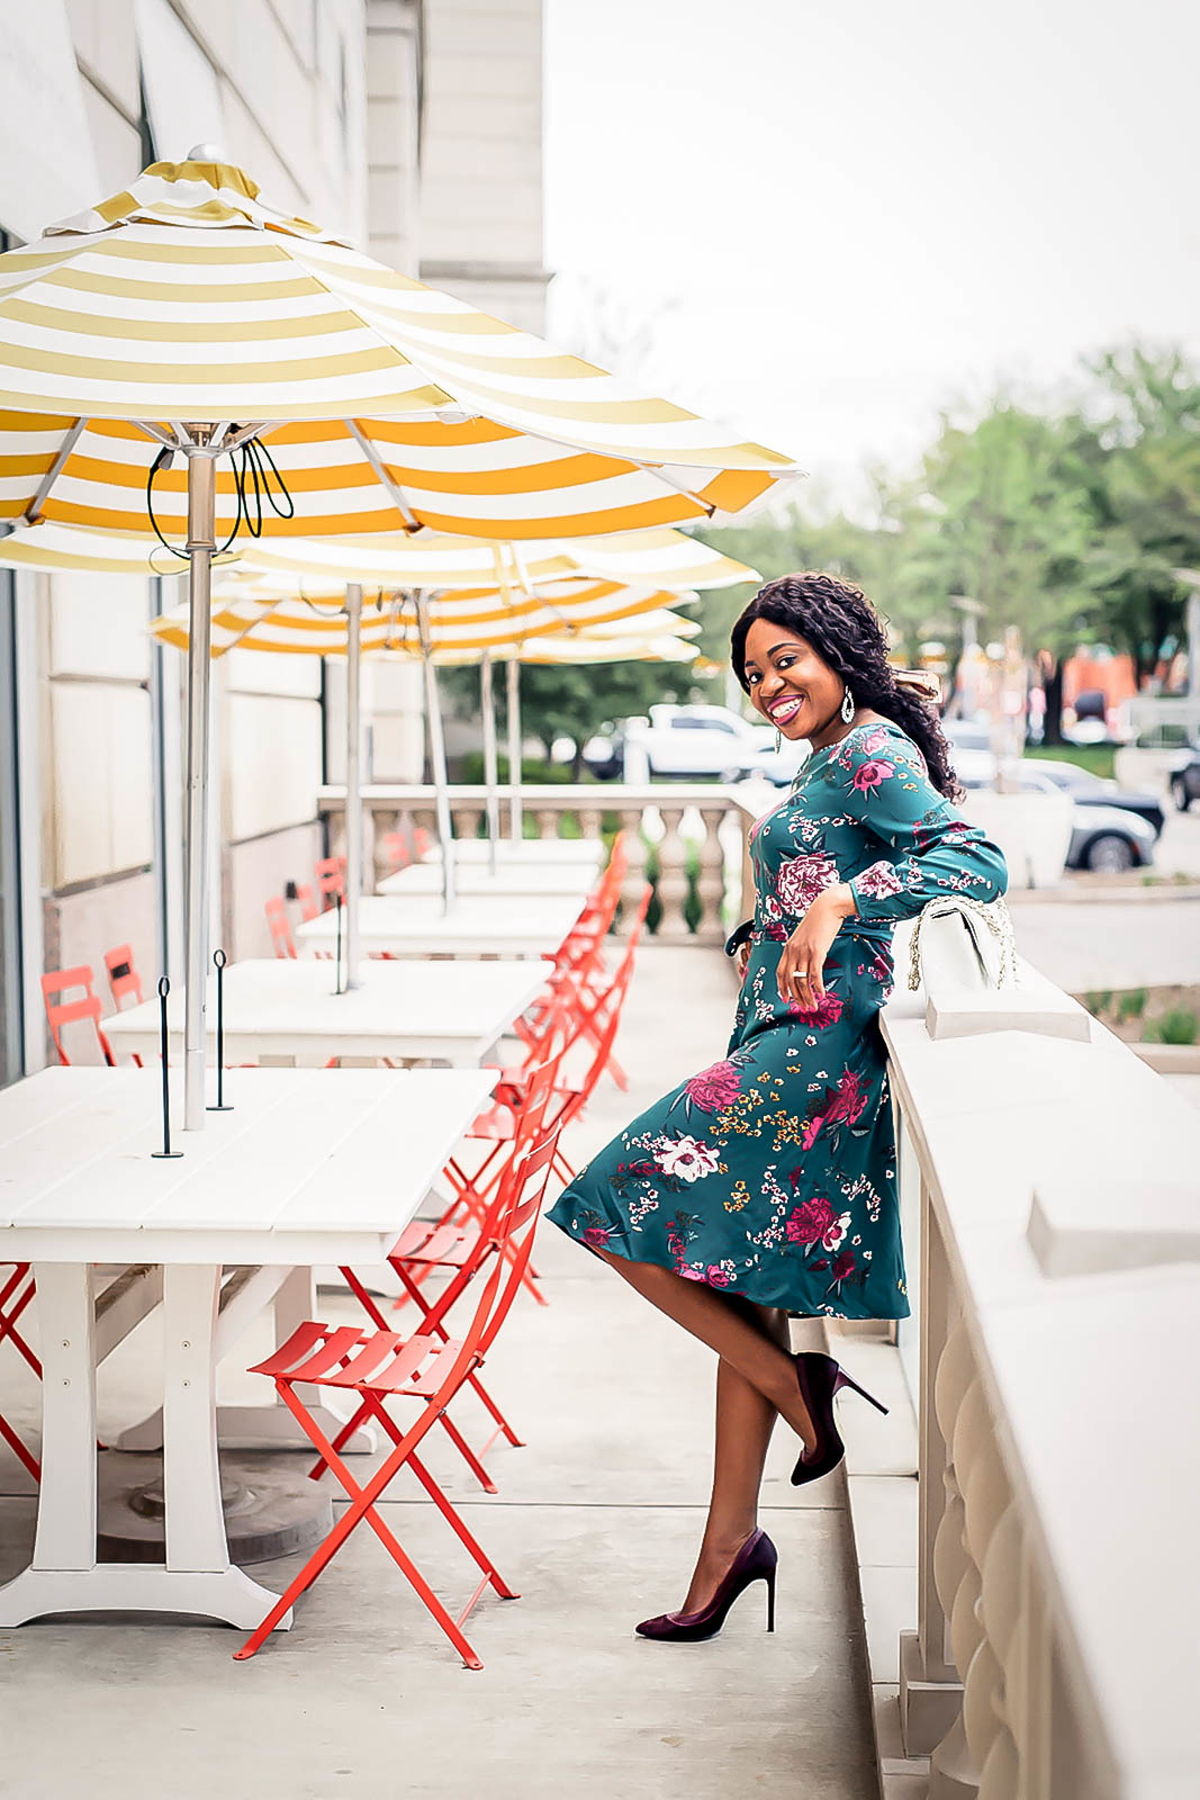 This knee-length a-line dress is seriously the best floral dress for summer. A nice but not overpowering contrast of colors makes this dress perfect for weddings, cocktails, work, and red carpet events. Your wallet will thank you too. #summerfashiontrends #weddingguest